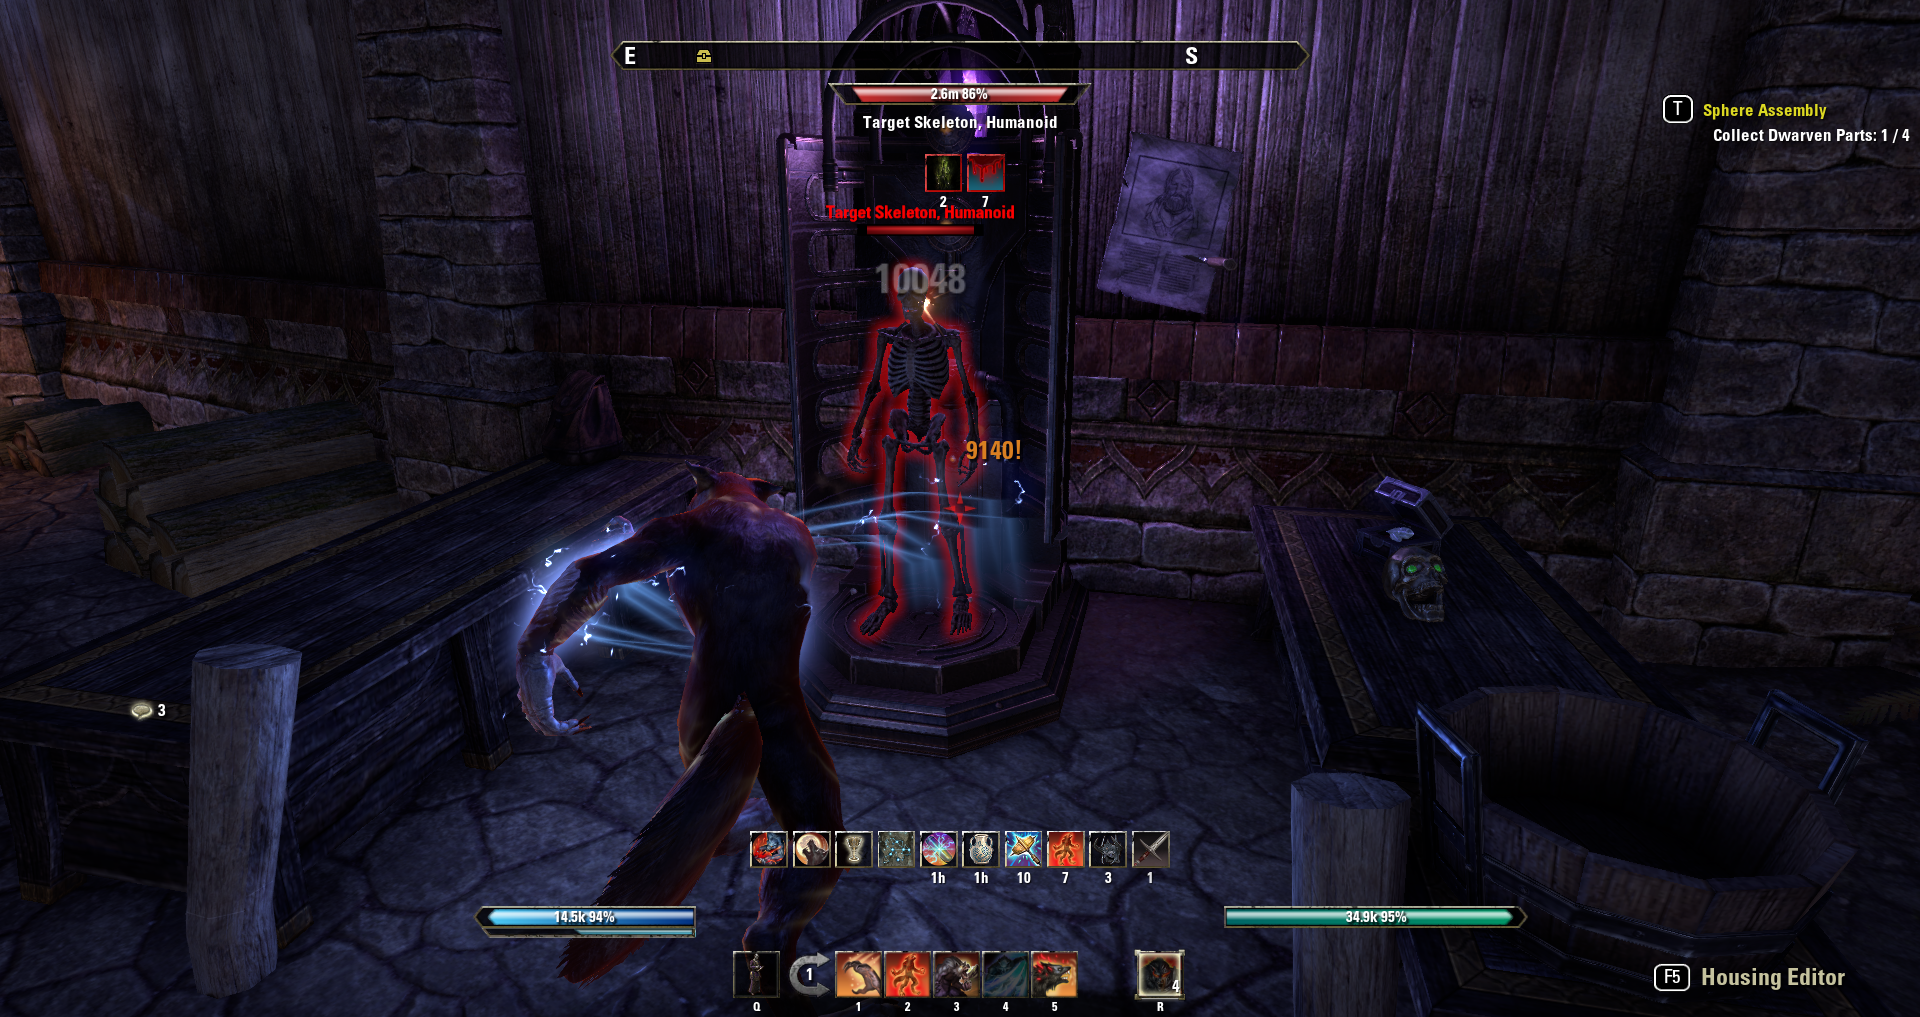 ESO Support and Technical Assistance :: The Elder Scrolls ...